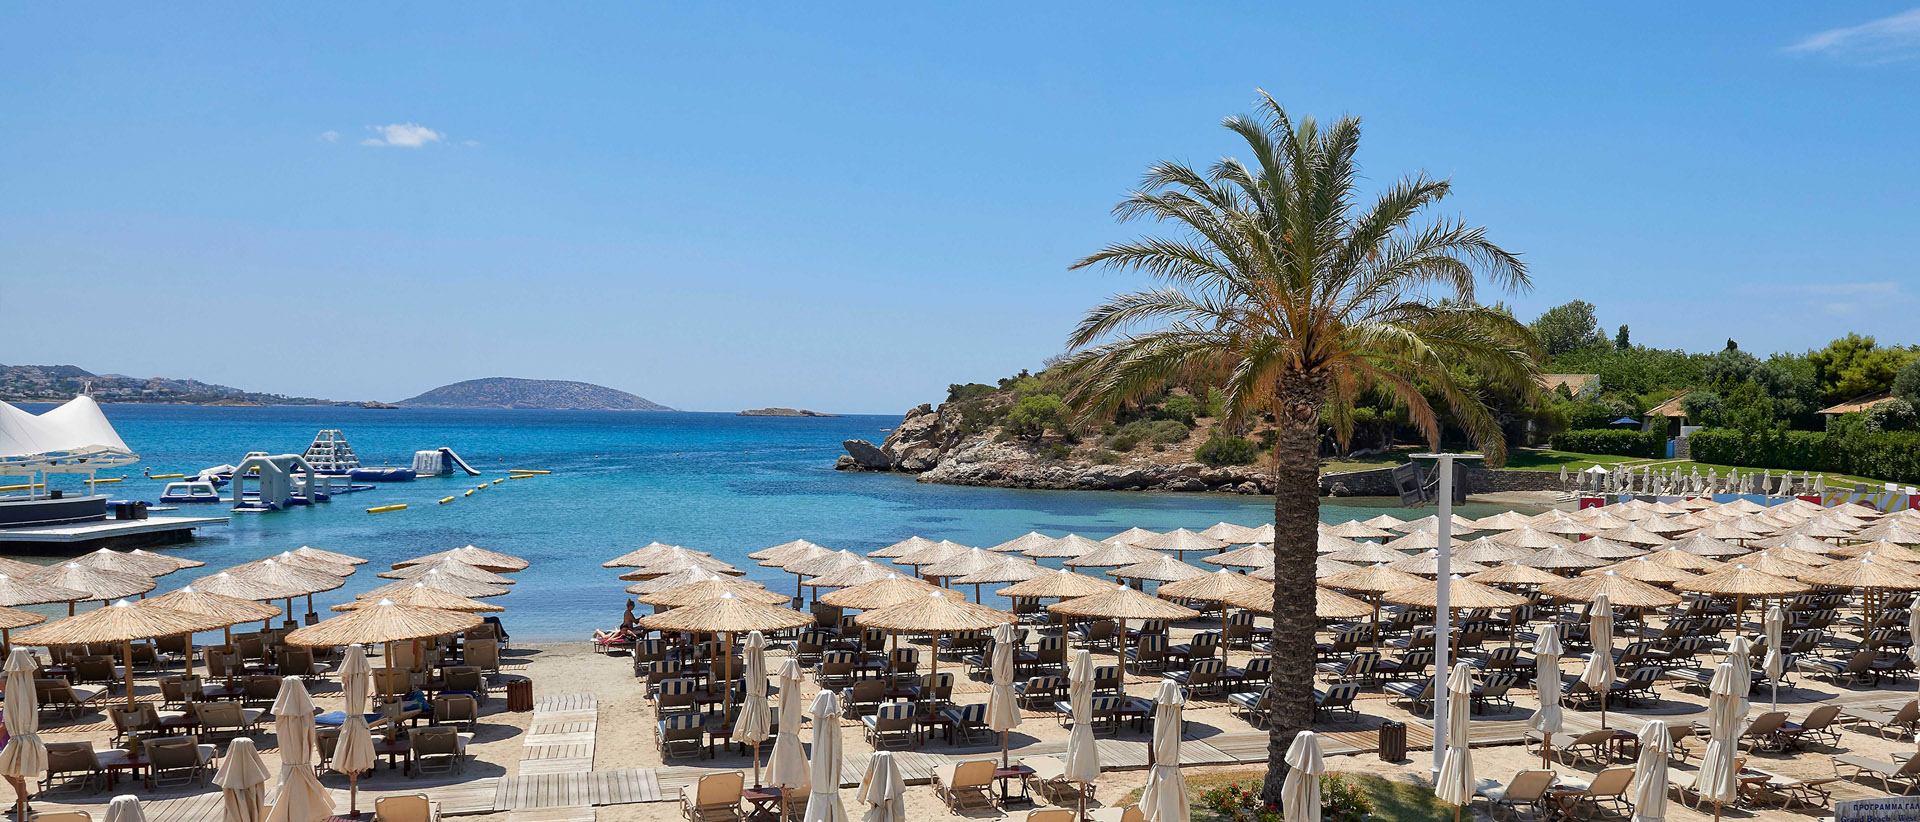 Explore the paradise of the Athenian Riviera at Grand Resort Lagonissi